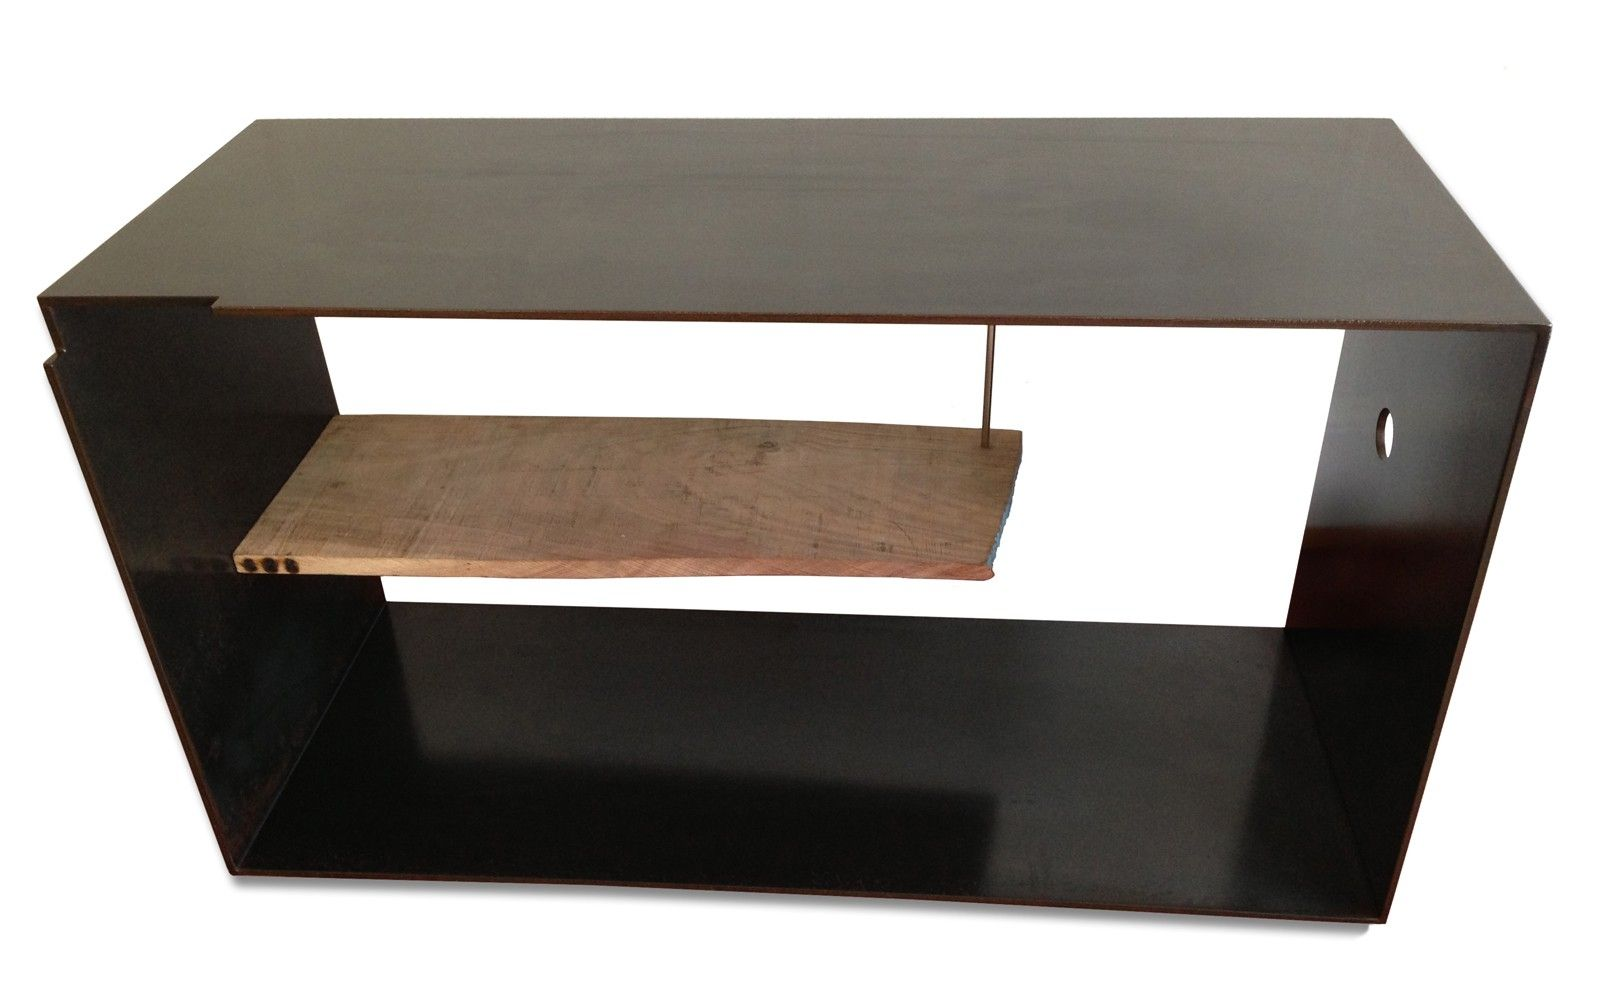 Handmade Szk Metals 39 Siv 39 Modern Metal Coffee Table Console W Wood Shelf By Szk Metals